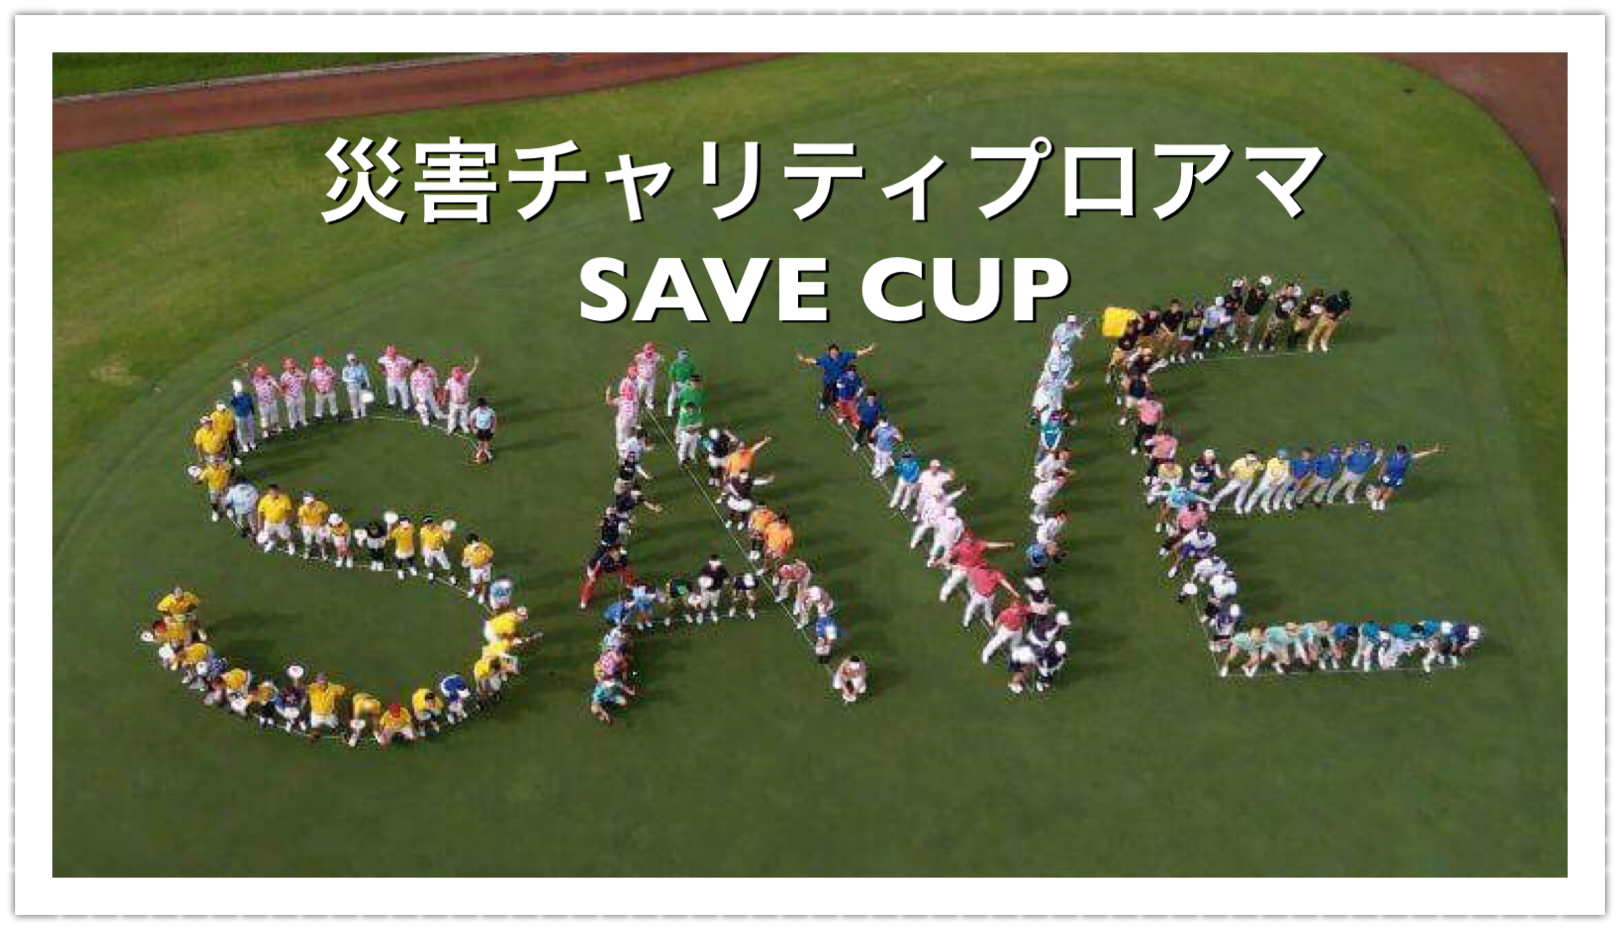 SAVE CUP 詳細